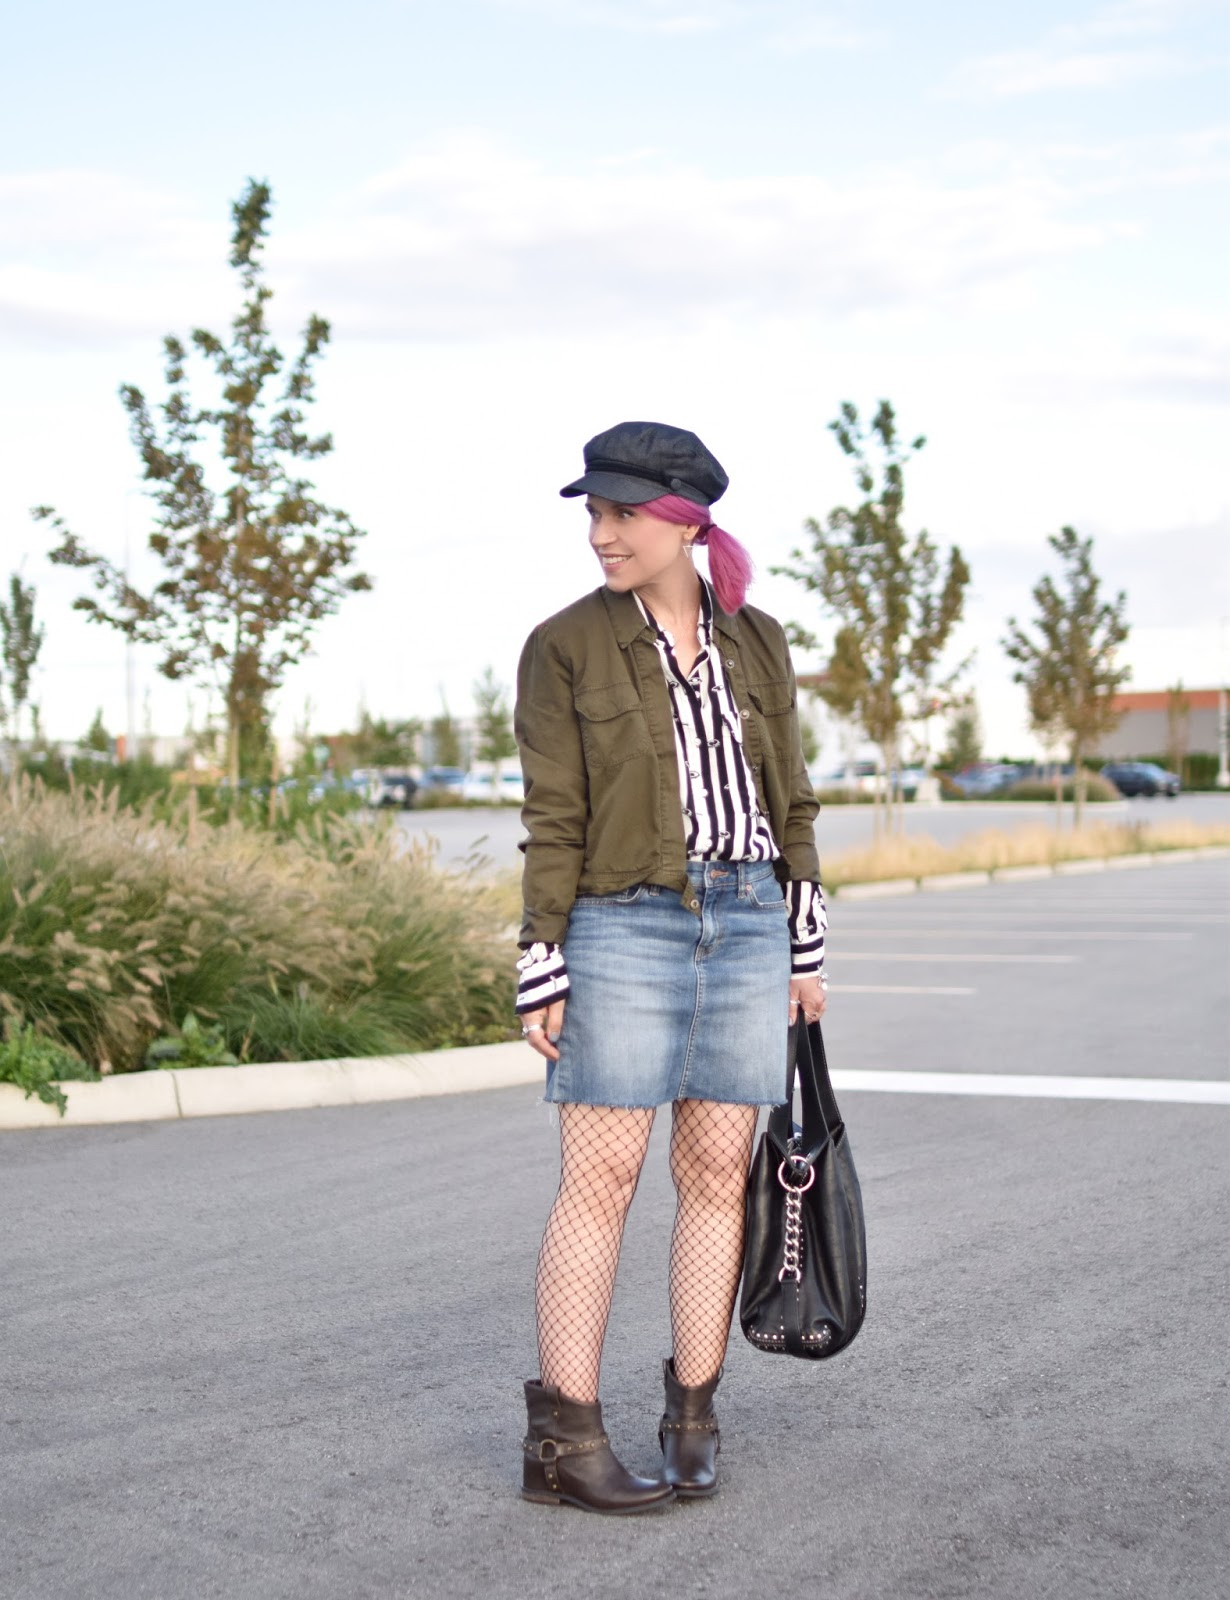 Monika Faulkner outfit inspiration - styling faux-flat harness boots with a denim mini skirt, fishnet tights, patterned shirt, and cargo jacket